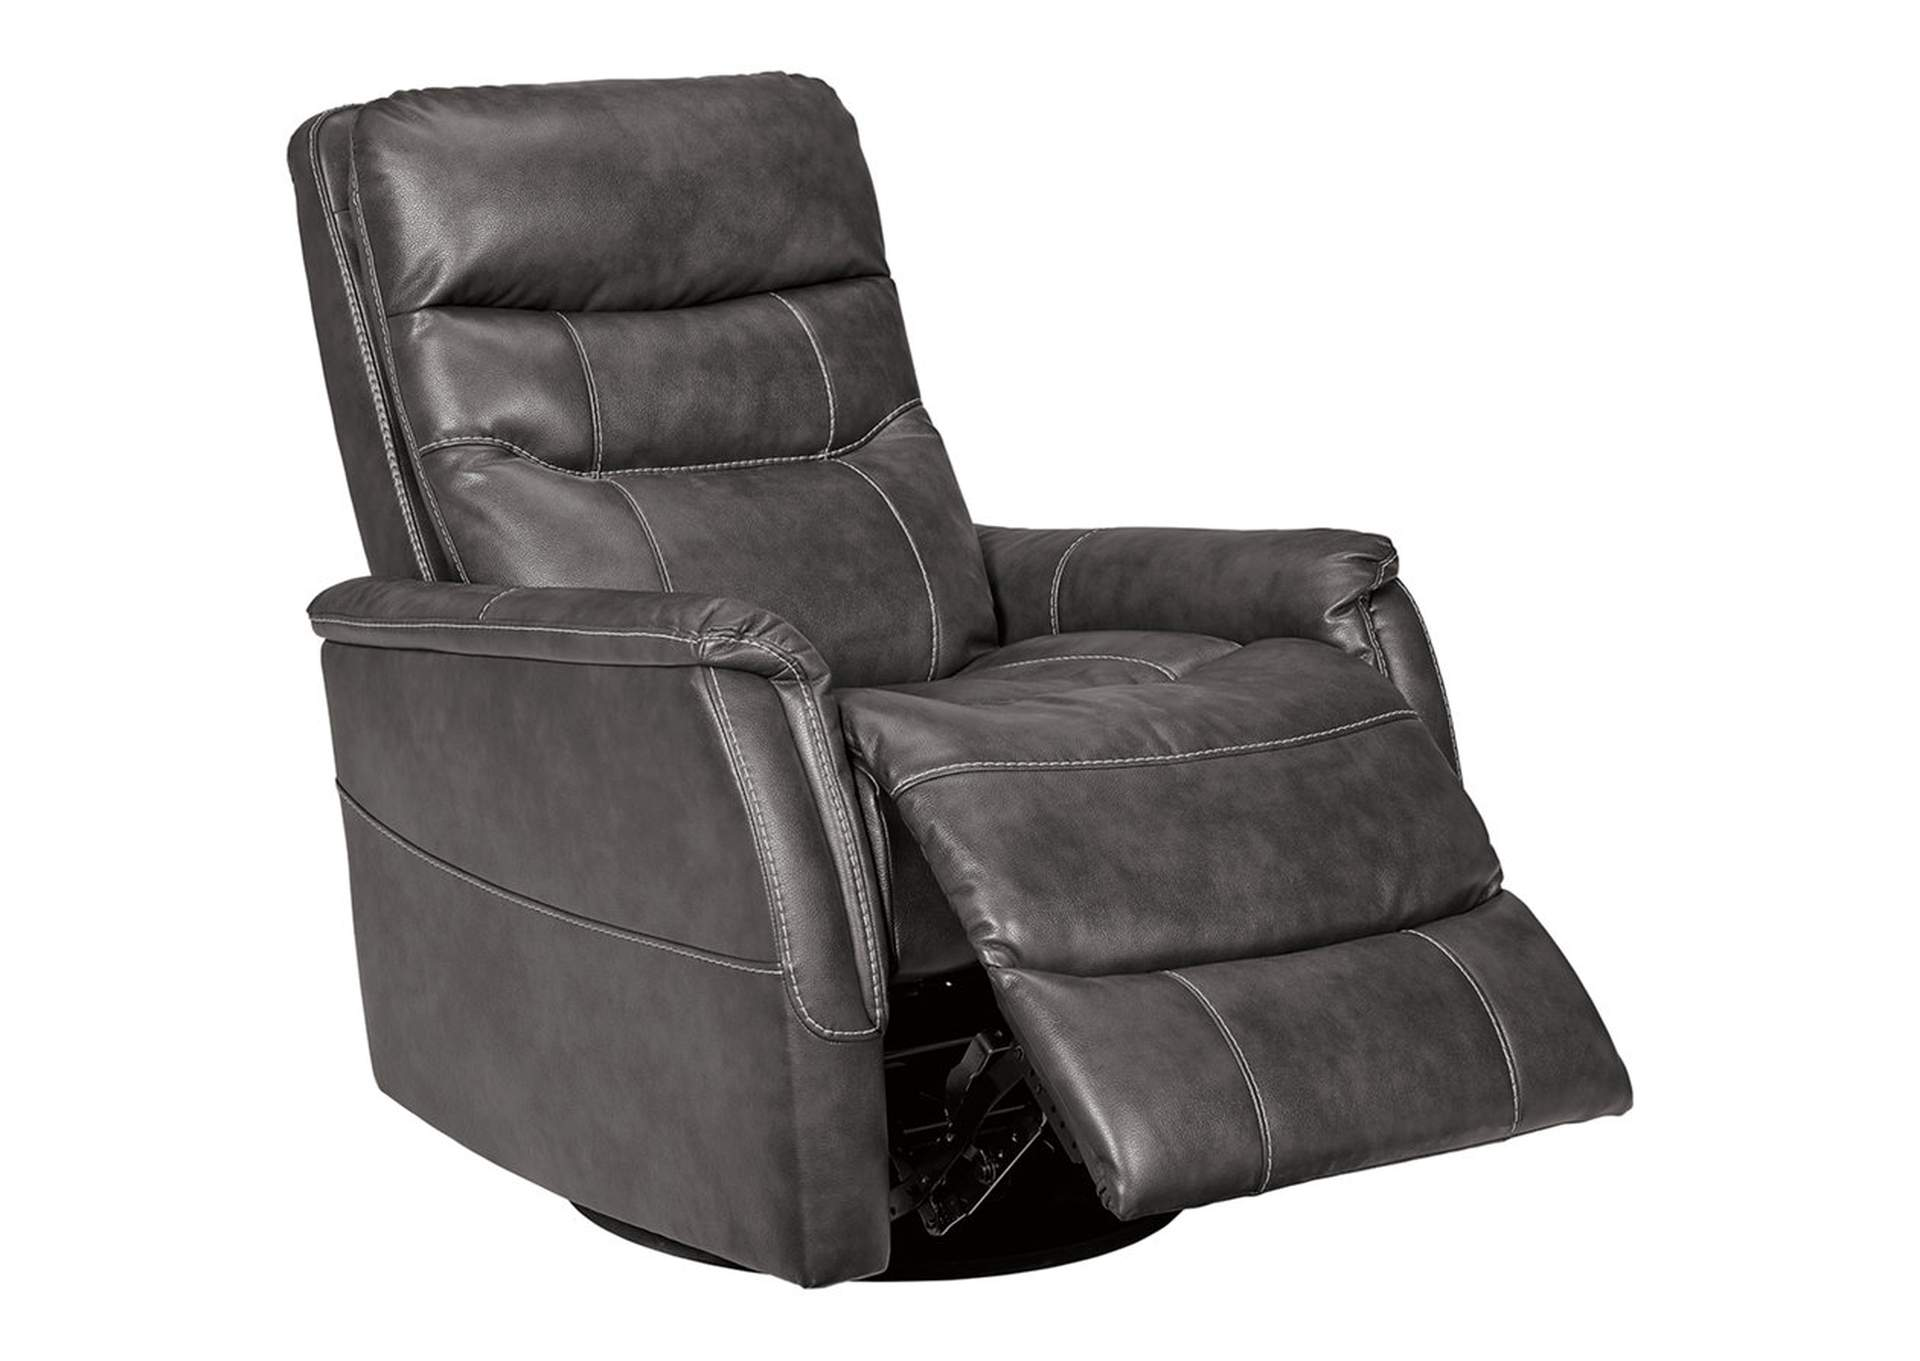 Riptyme Quarry Swivel Glider Recliner,Signature Design By Ashley